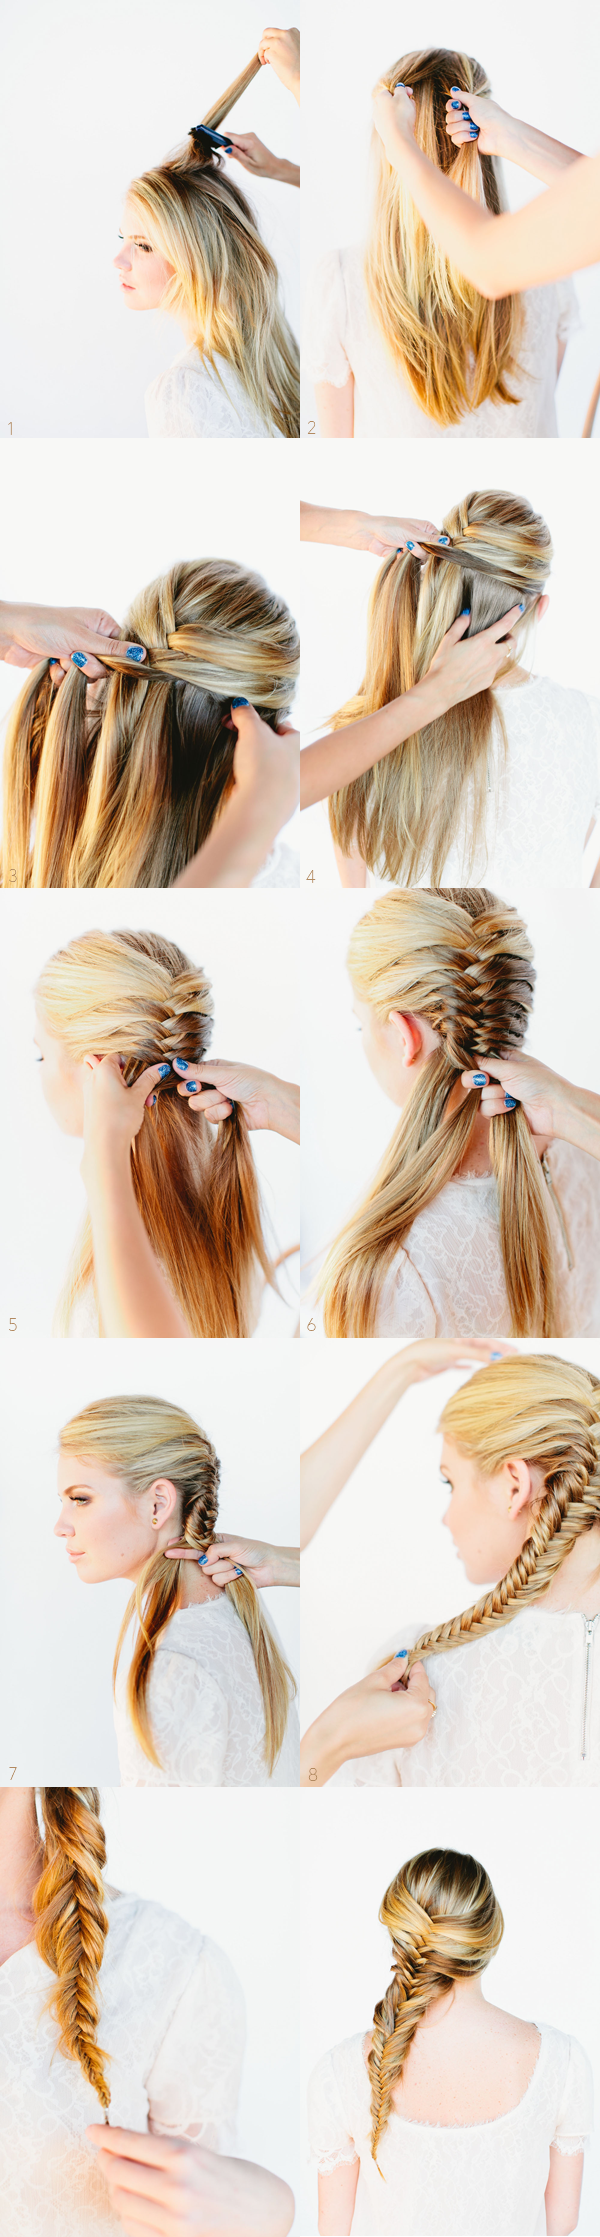 Beautiful Fishtail Braided Hairstyle Tutorial